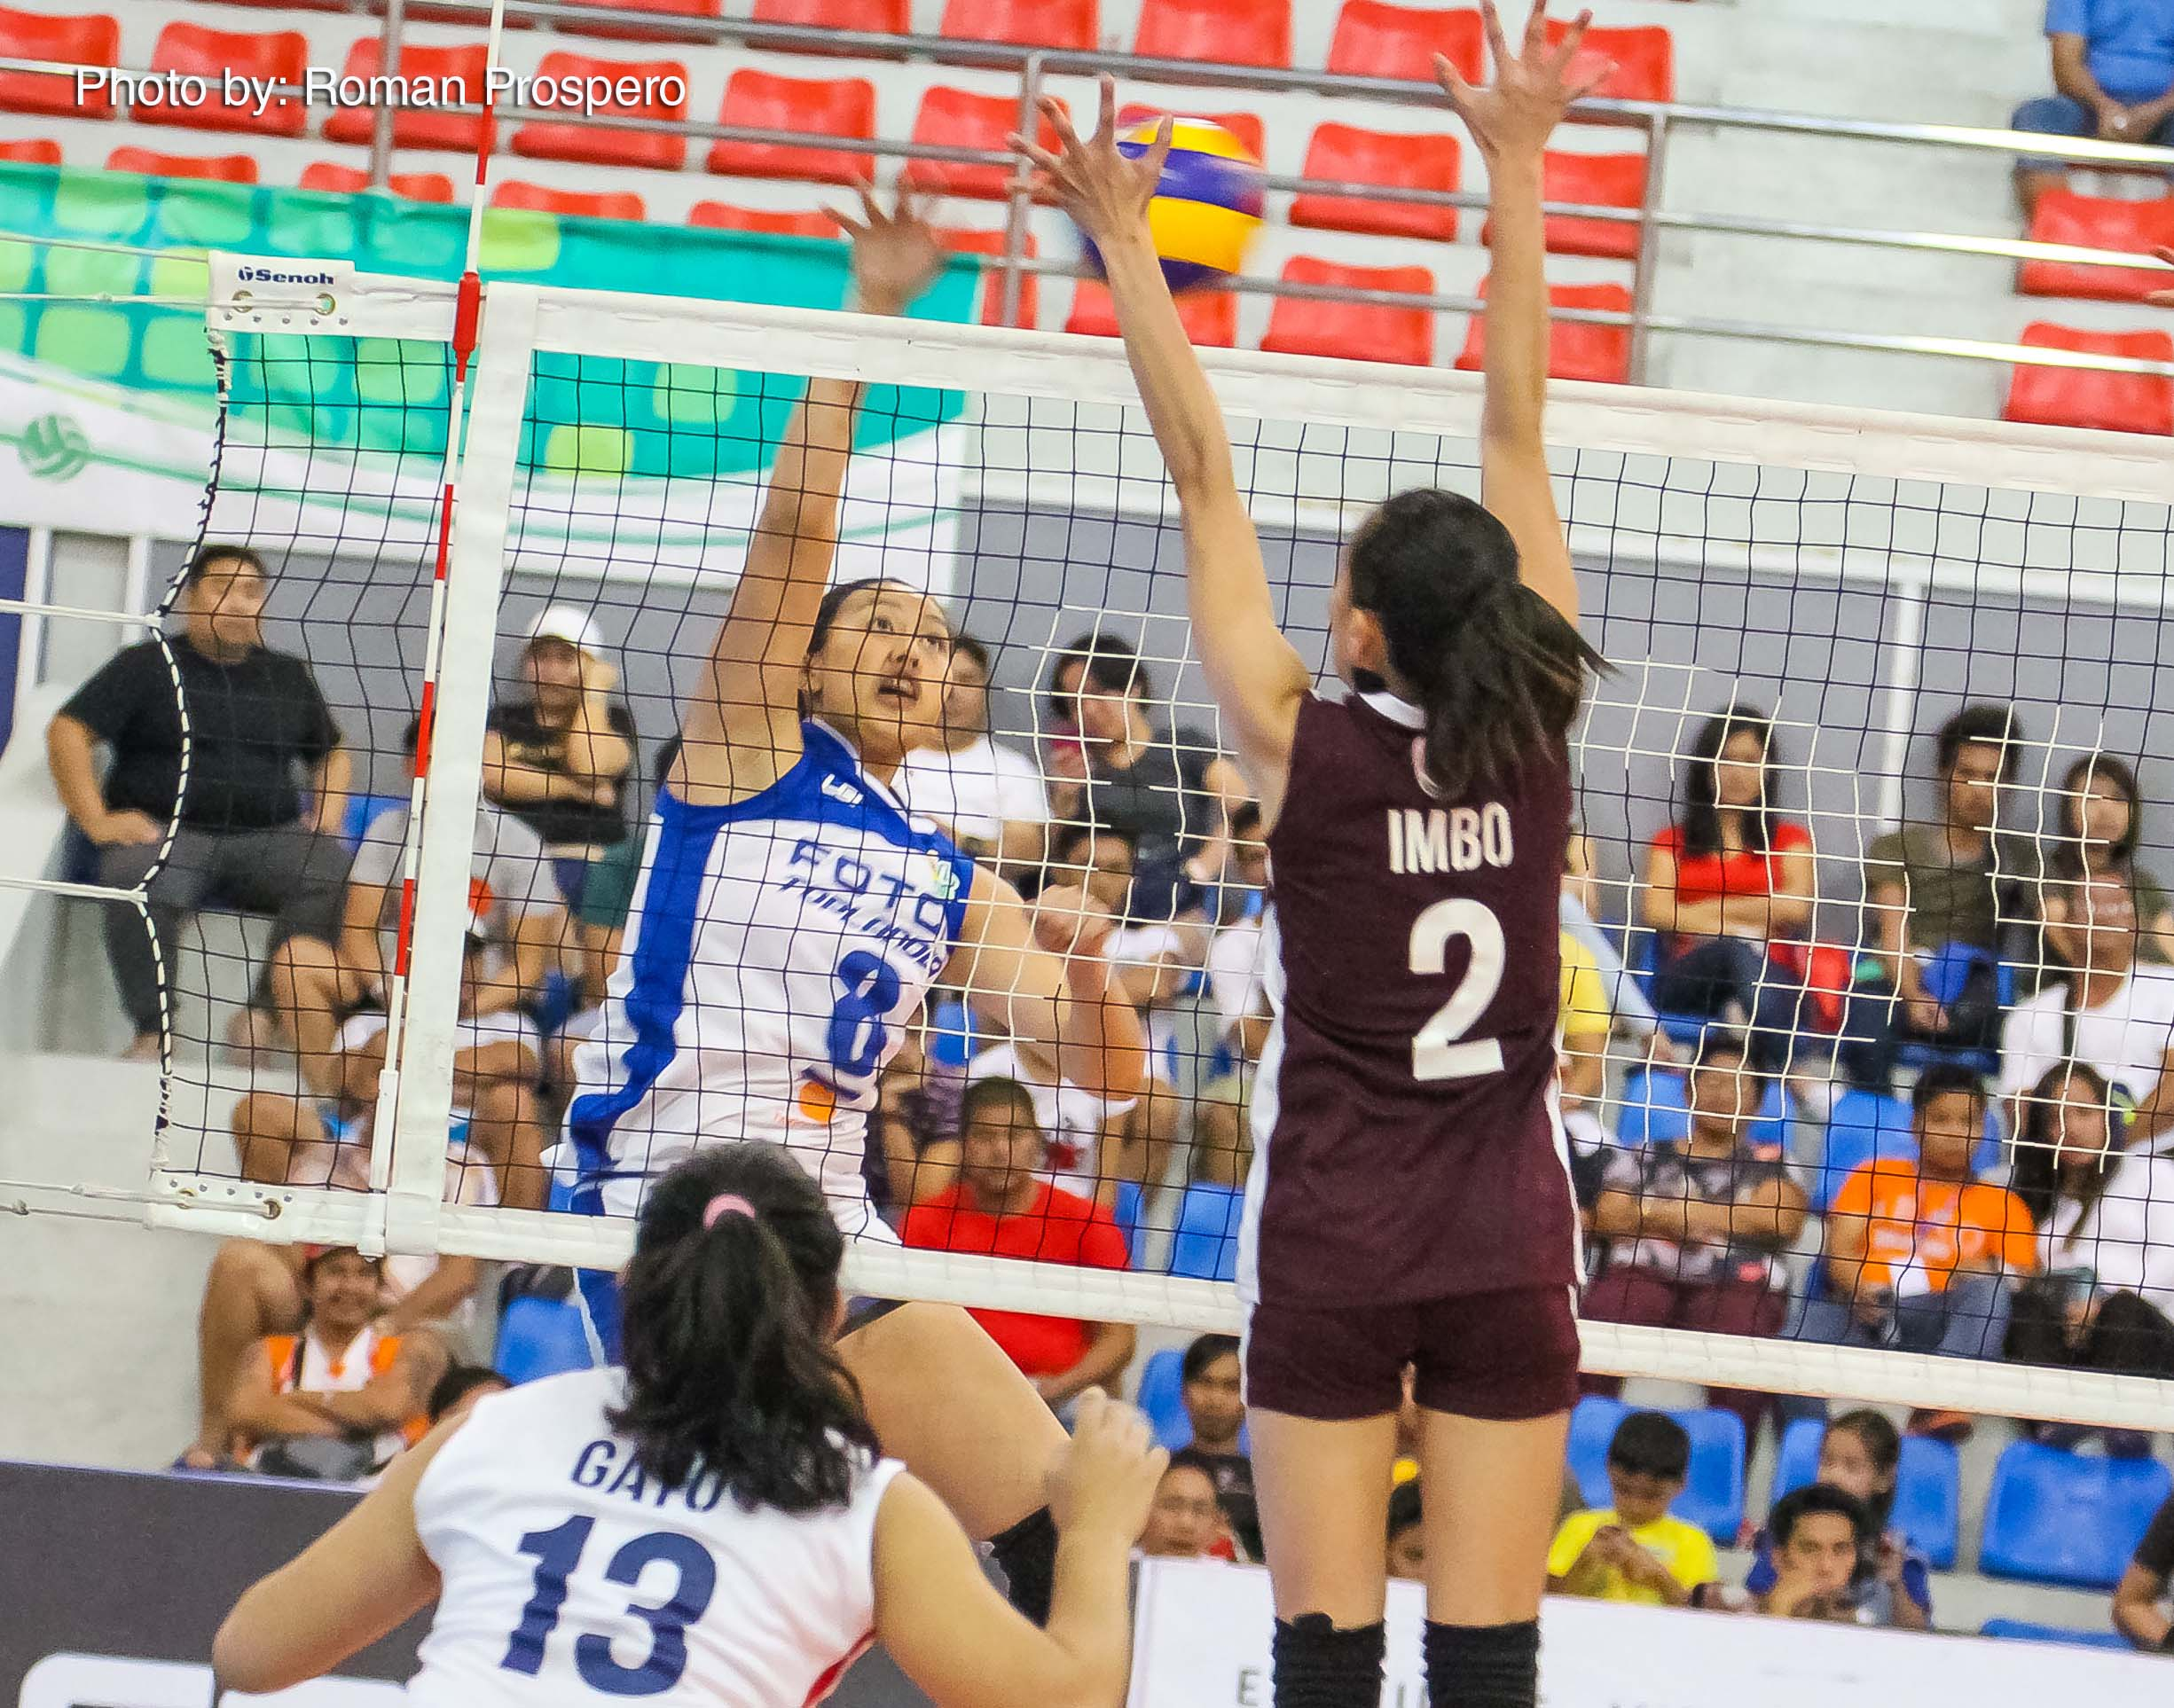 Tiebreaker Times Foton barges into win column, tops New San Jose News PSL Volleyball  Patty Orendain New San Jose Builders Victorias Maika Ortiz Lourdes Clemente Jamela Suyat Foton Toplanders Danna Henson Cindy Imbo 2016 PSL Invitational Cup